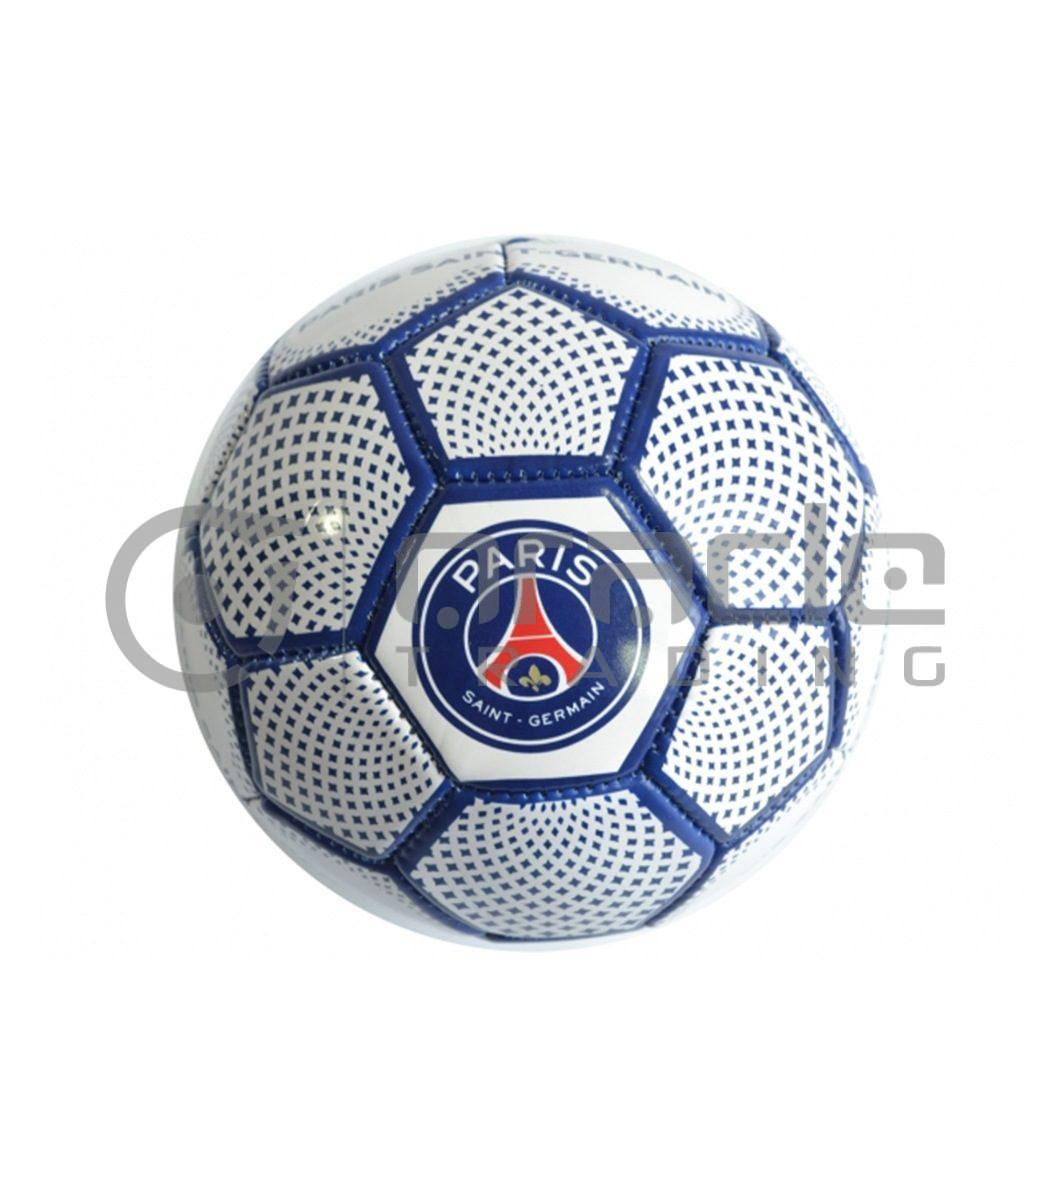 PSG Mini Soccer Ball